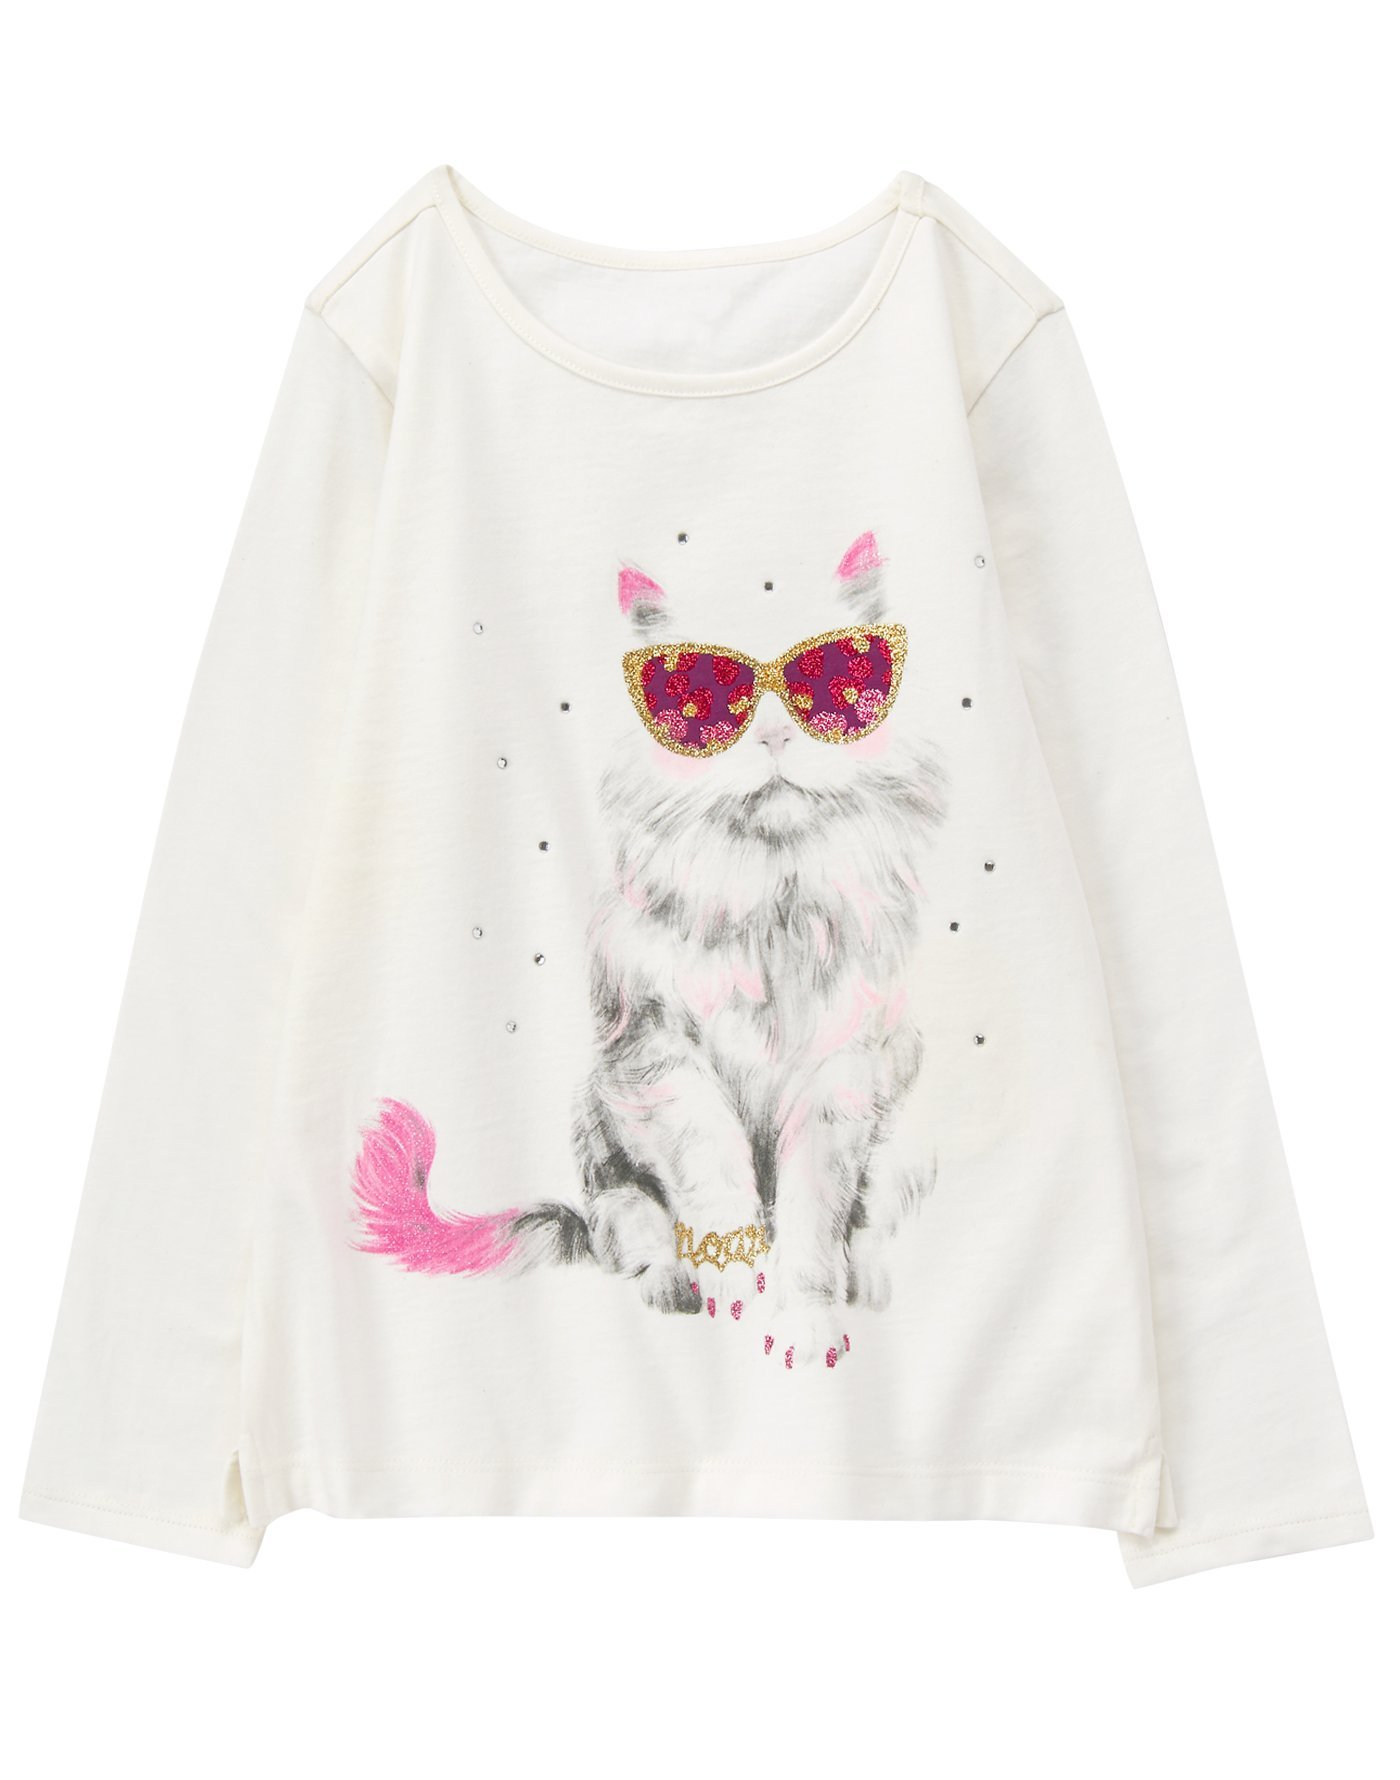 Gymboree Little Girls' Long Sleeve Graphic Tee, White Sunglasses, S by Gymboree